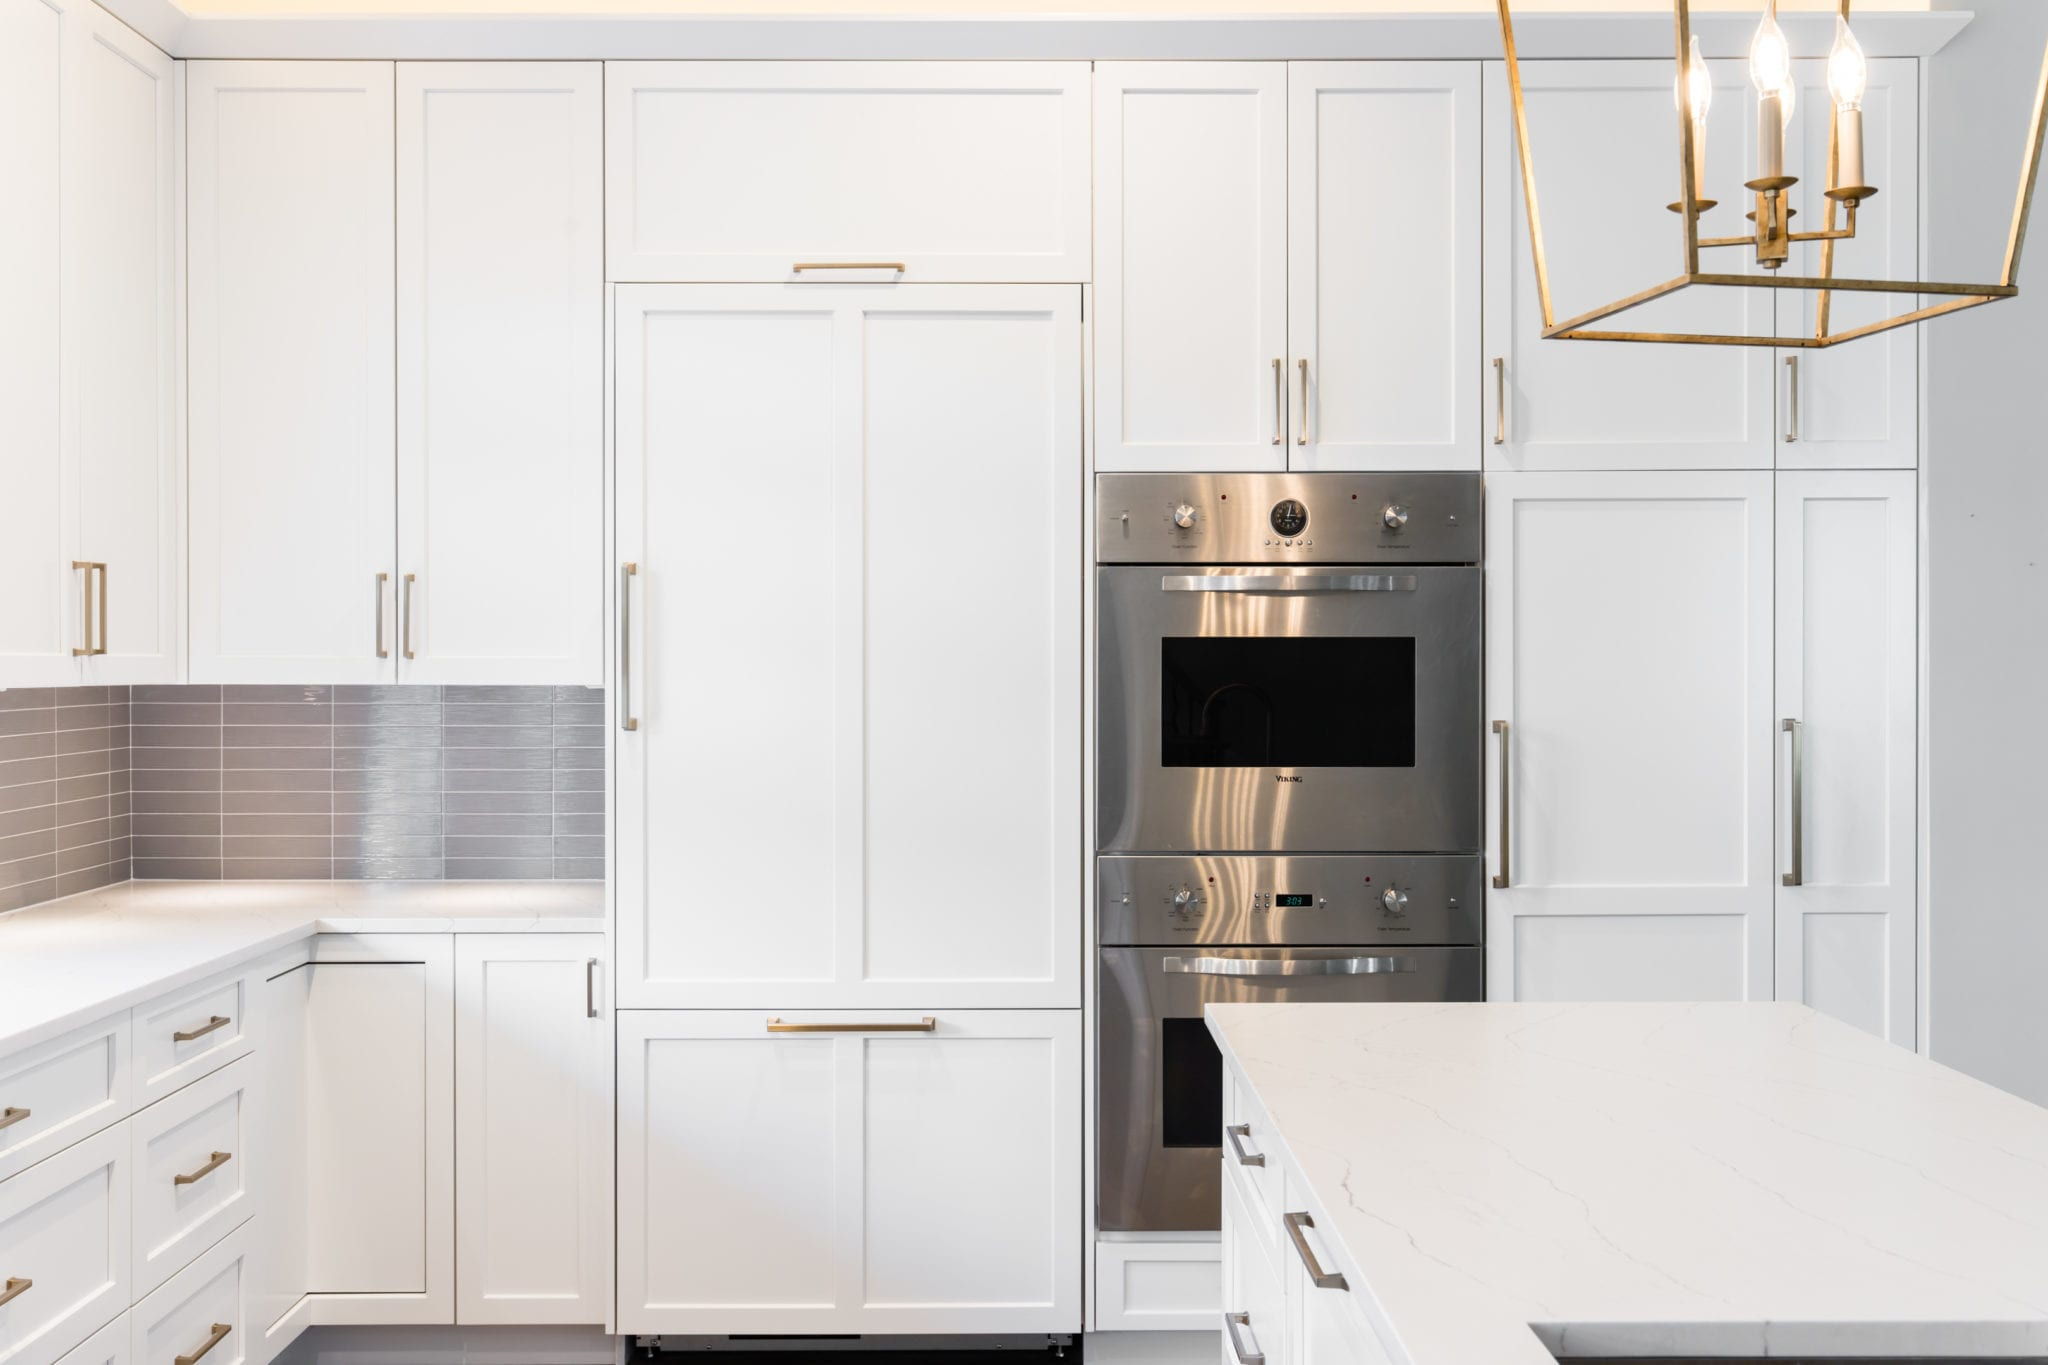 Custom-Cabinetry-Bosch-Oven-After-Kitchen-Remodel-Turtle-Creek-Texas-Townhome-Condo